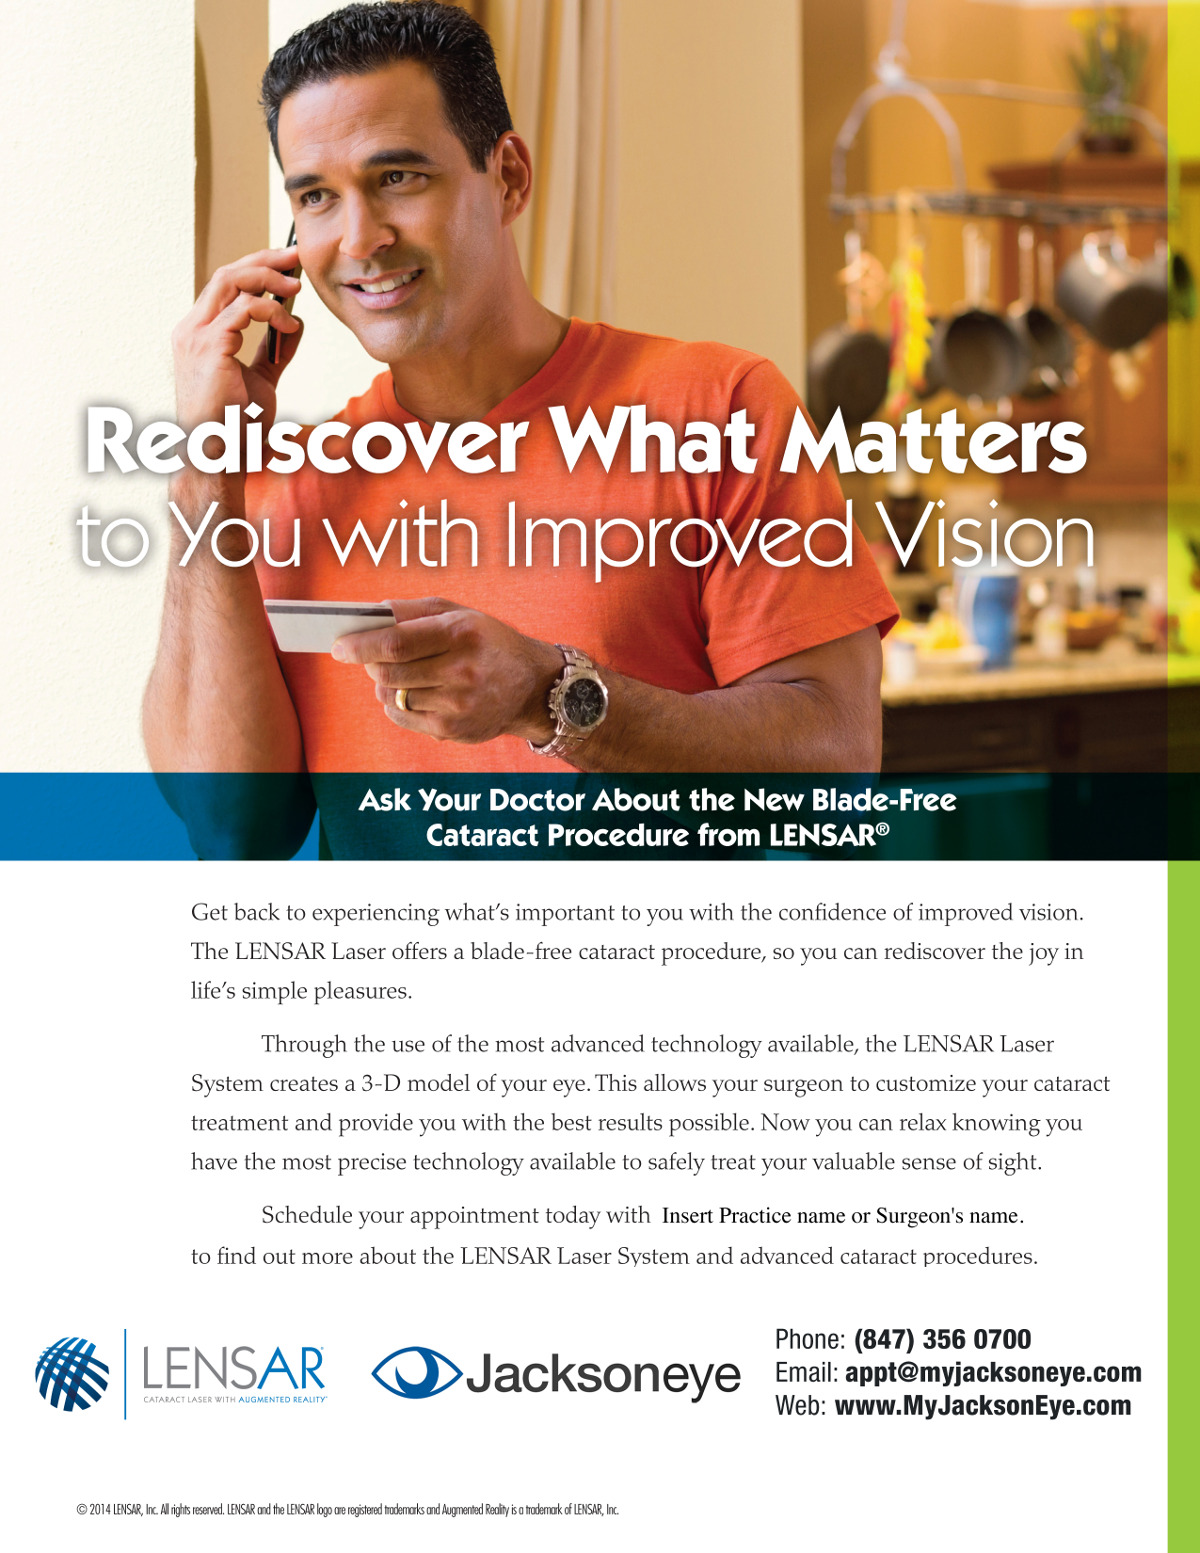 Jacksoneye LENSAR Cataract Surgery Ad with a man talking on the phone